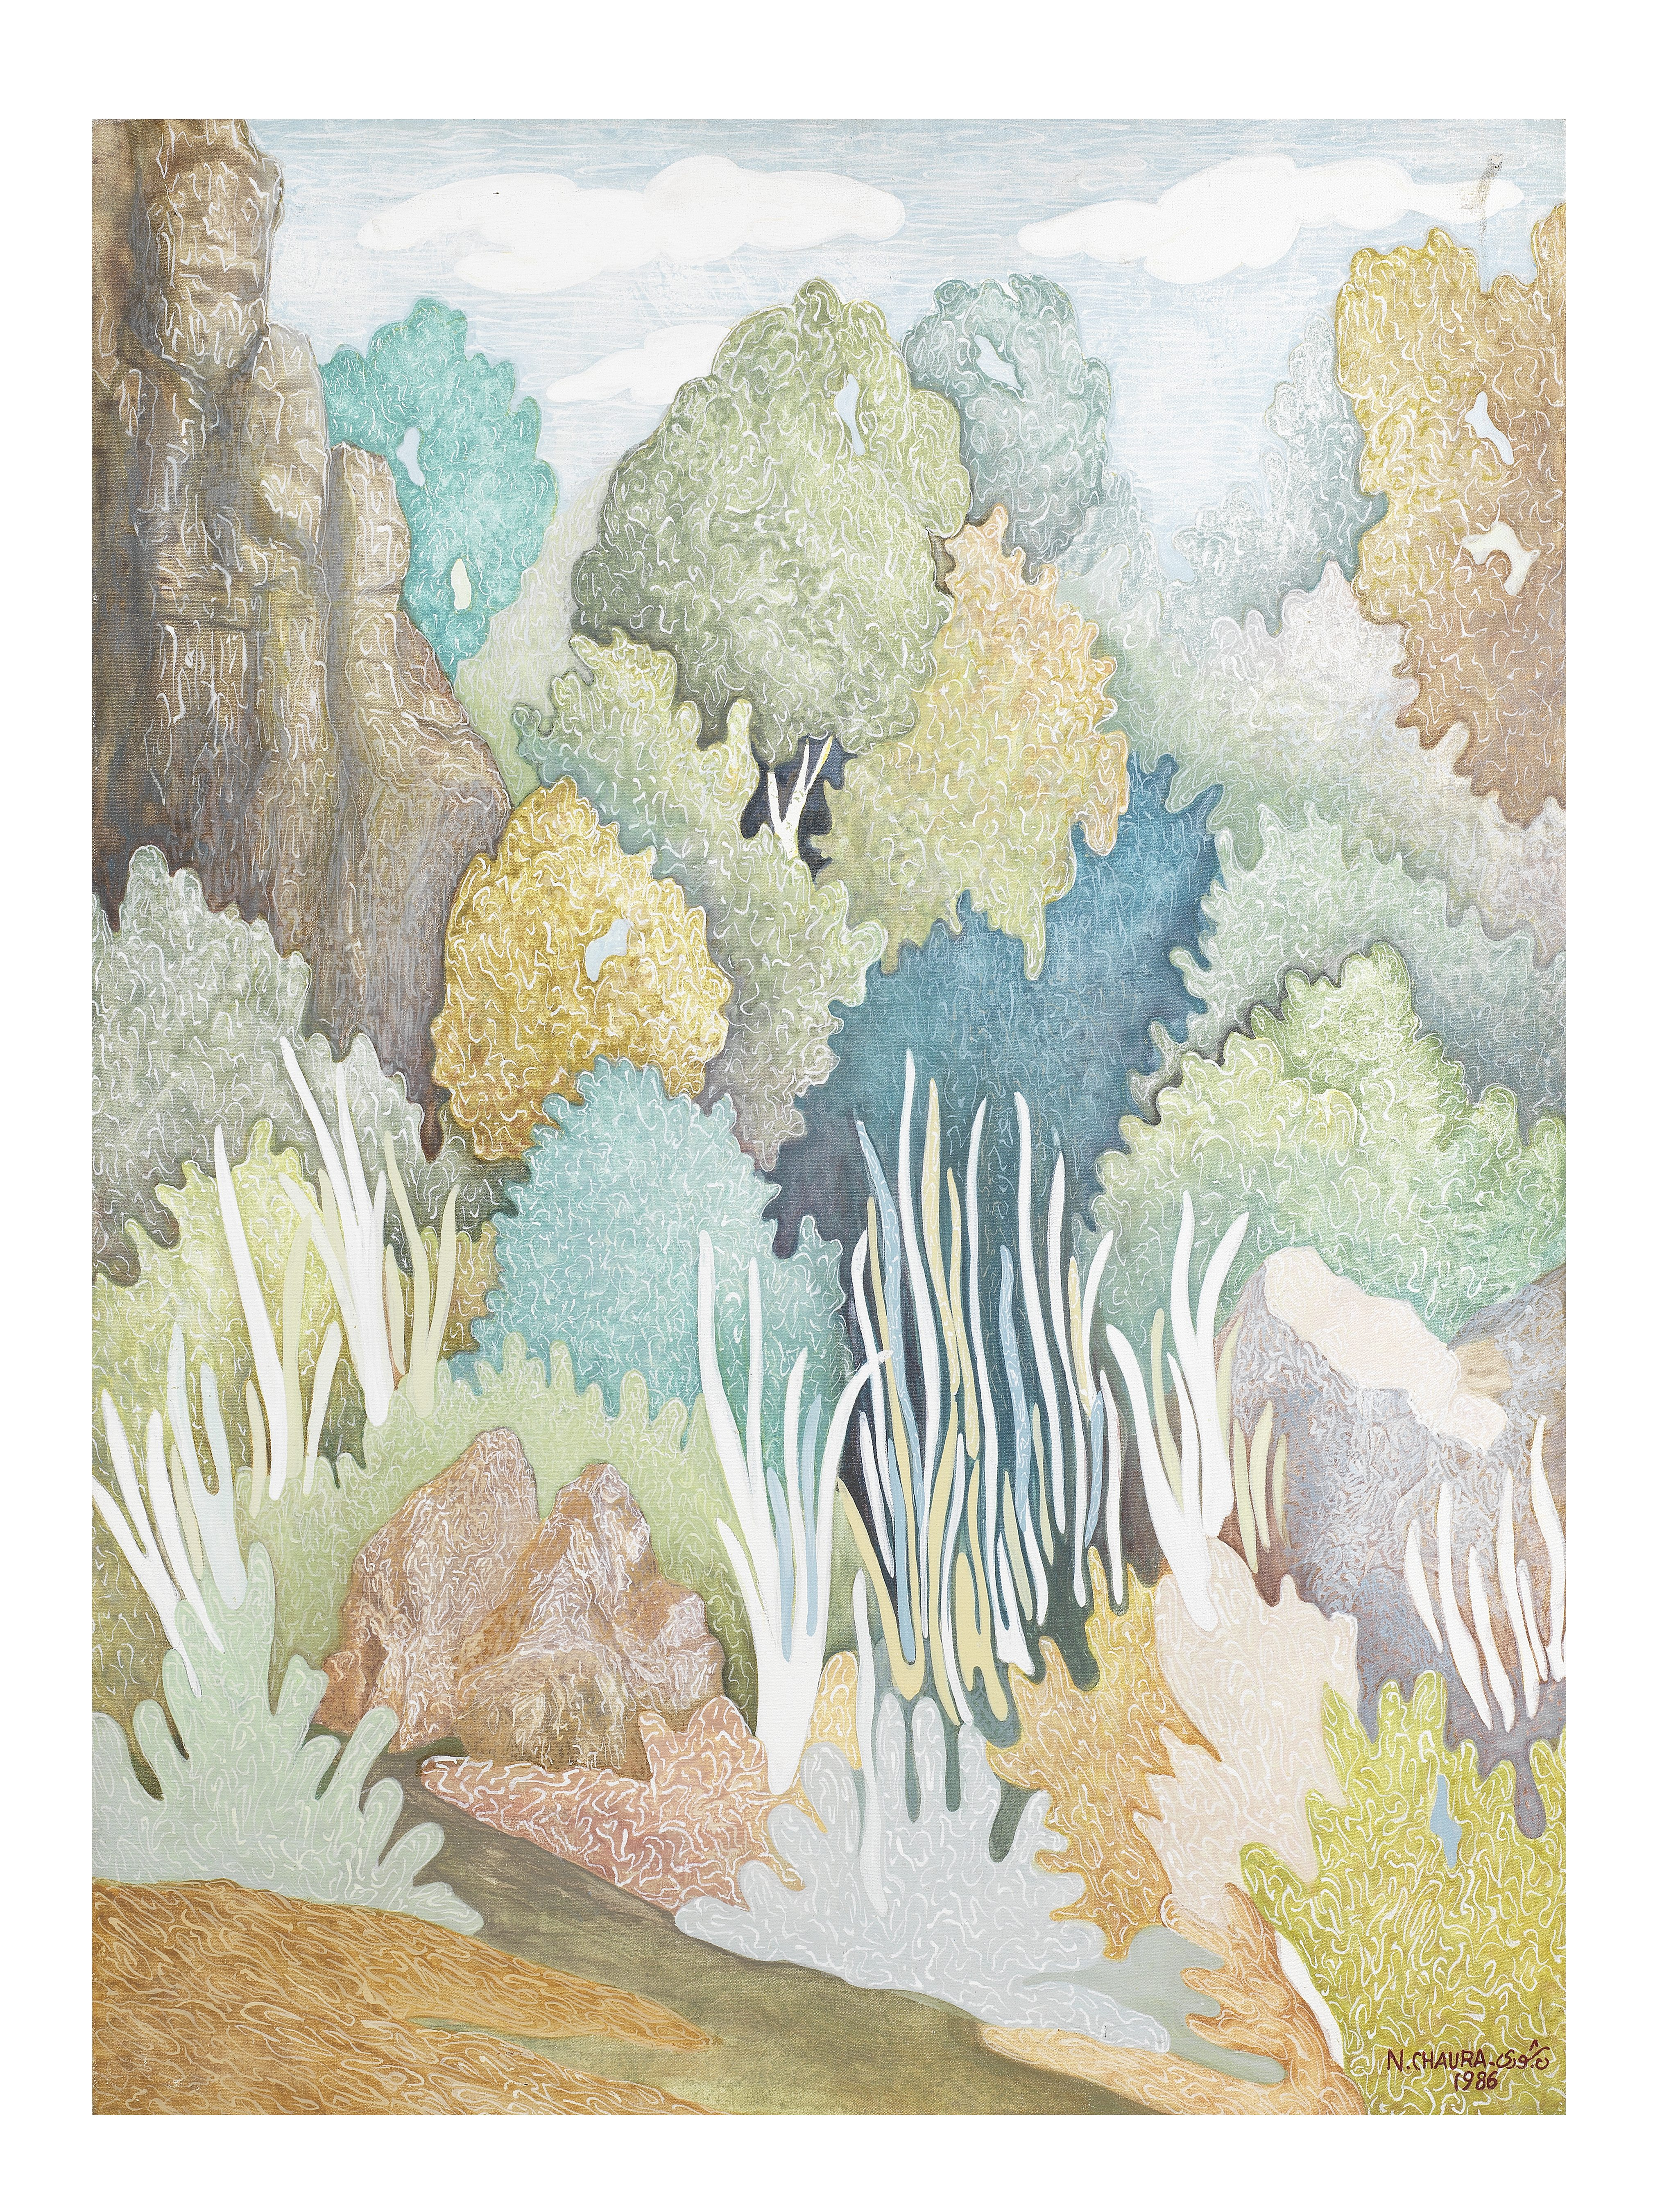 Naseer Chaura (Syria, 1920-1992) The Enchanted Forest